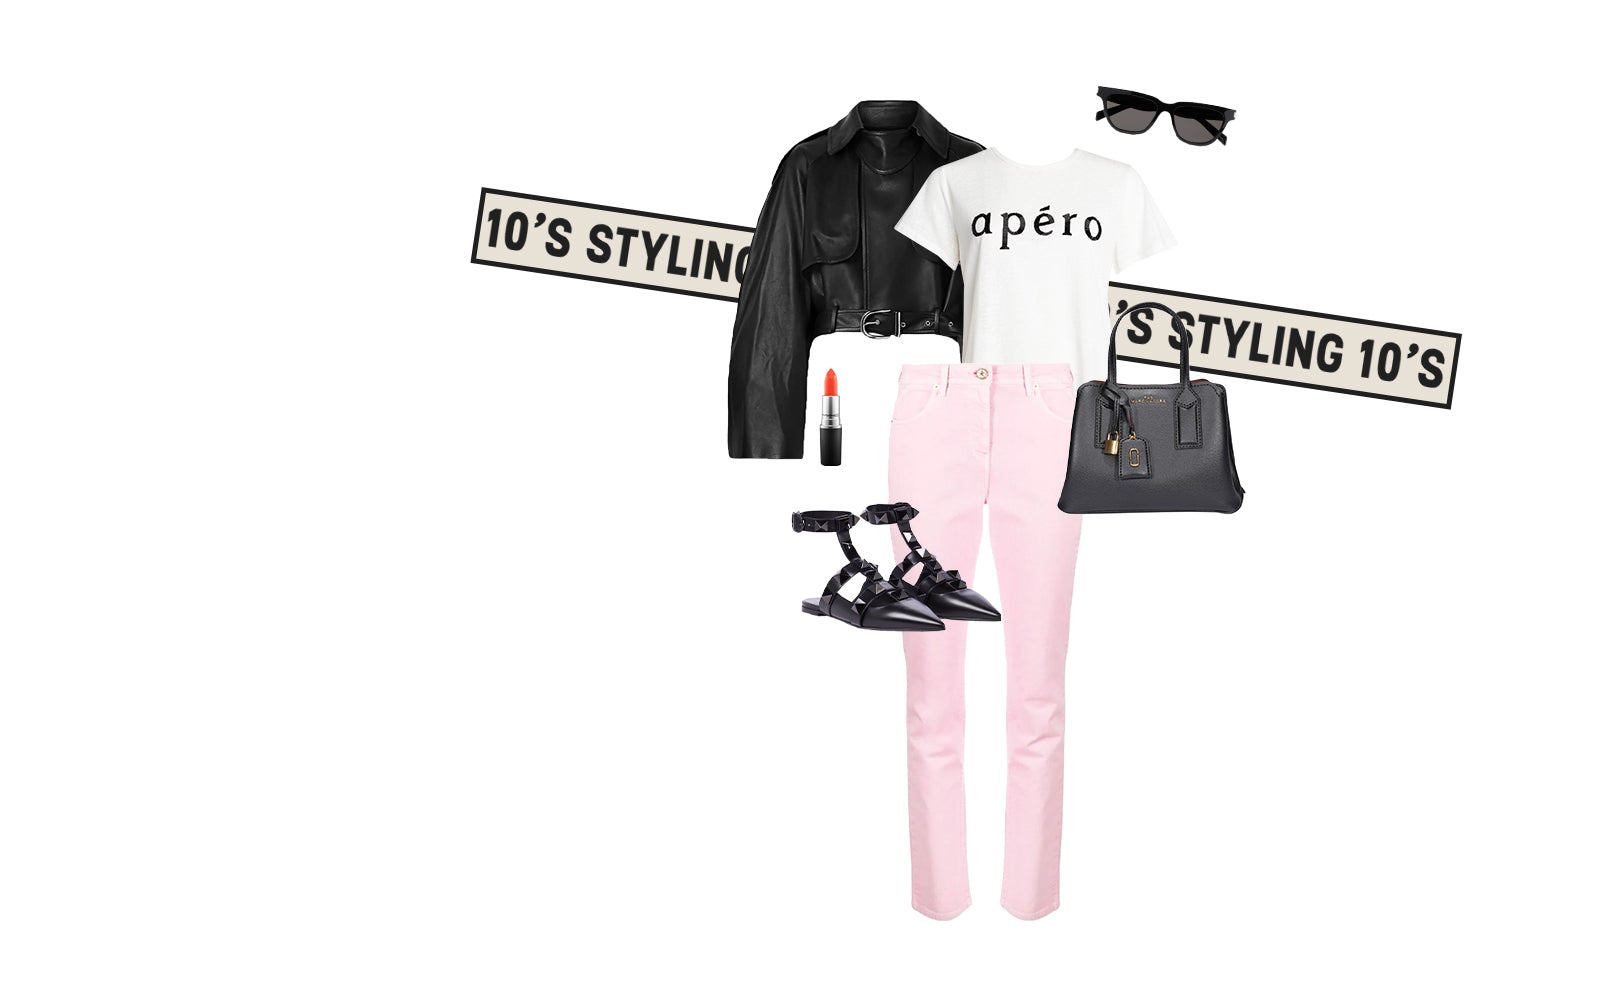 2010s Styling